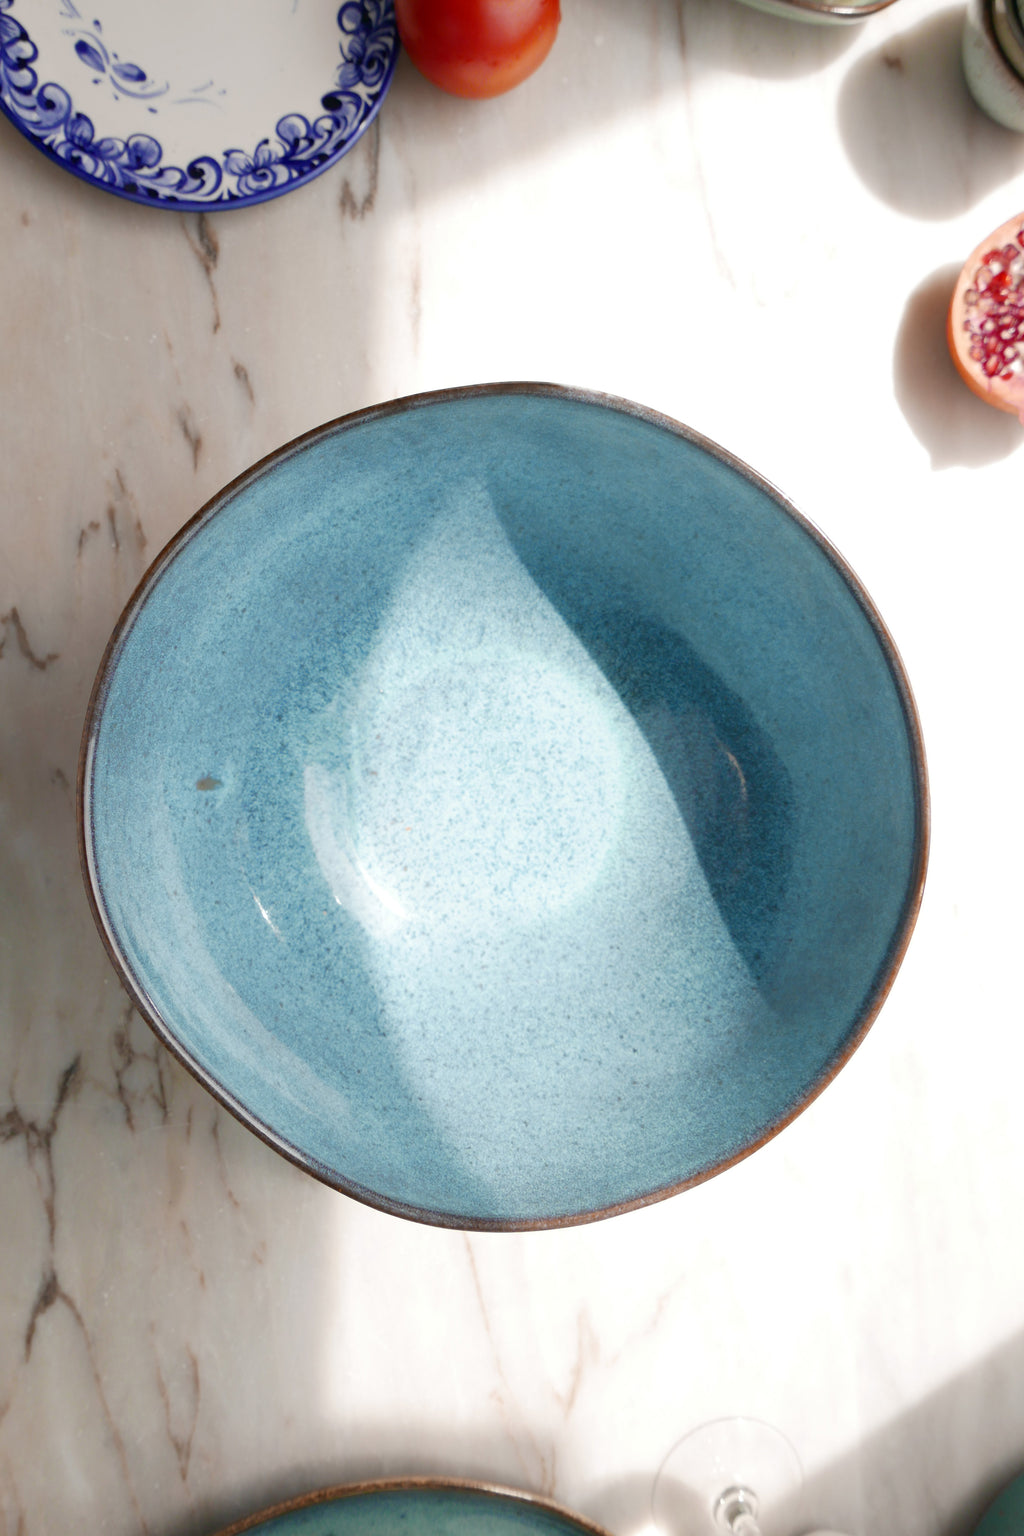 Ceramic Soup Bowl - Blue Brown Speckled